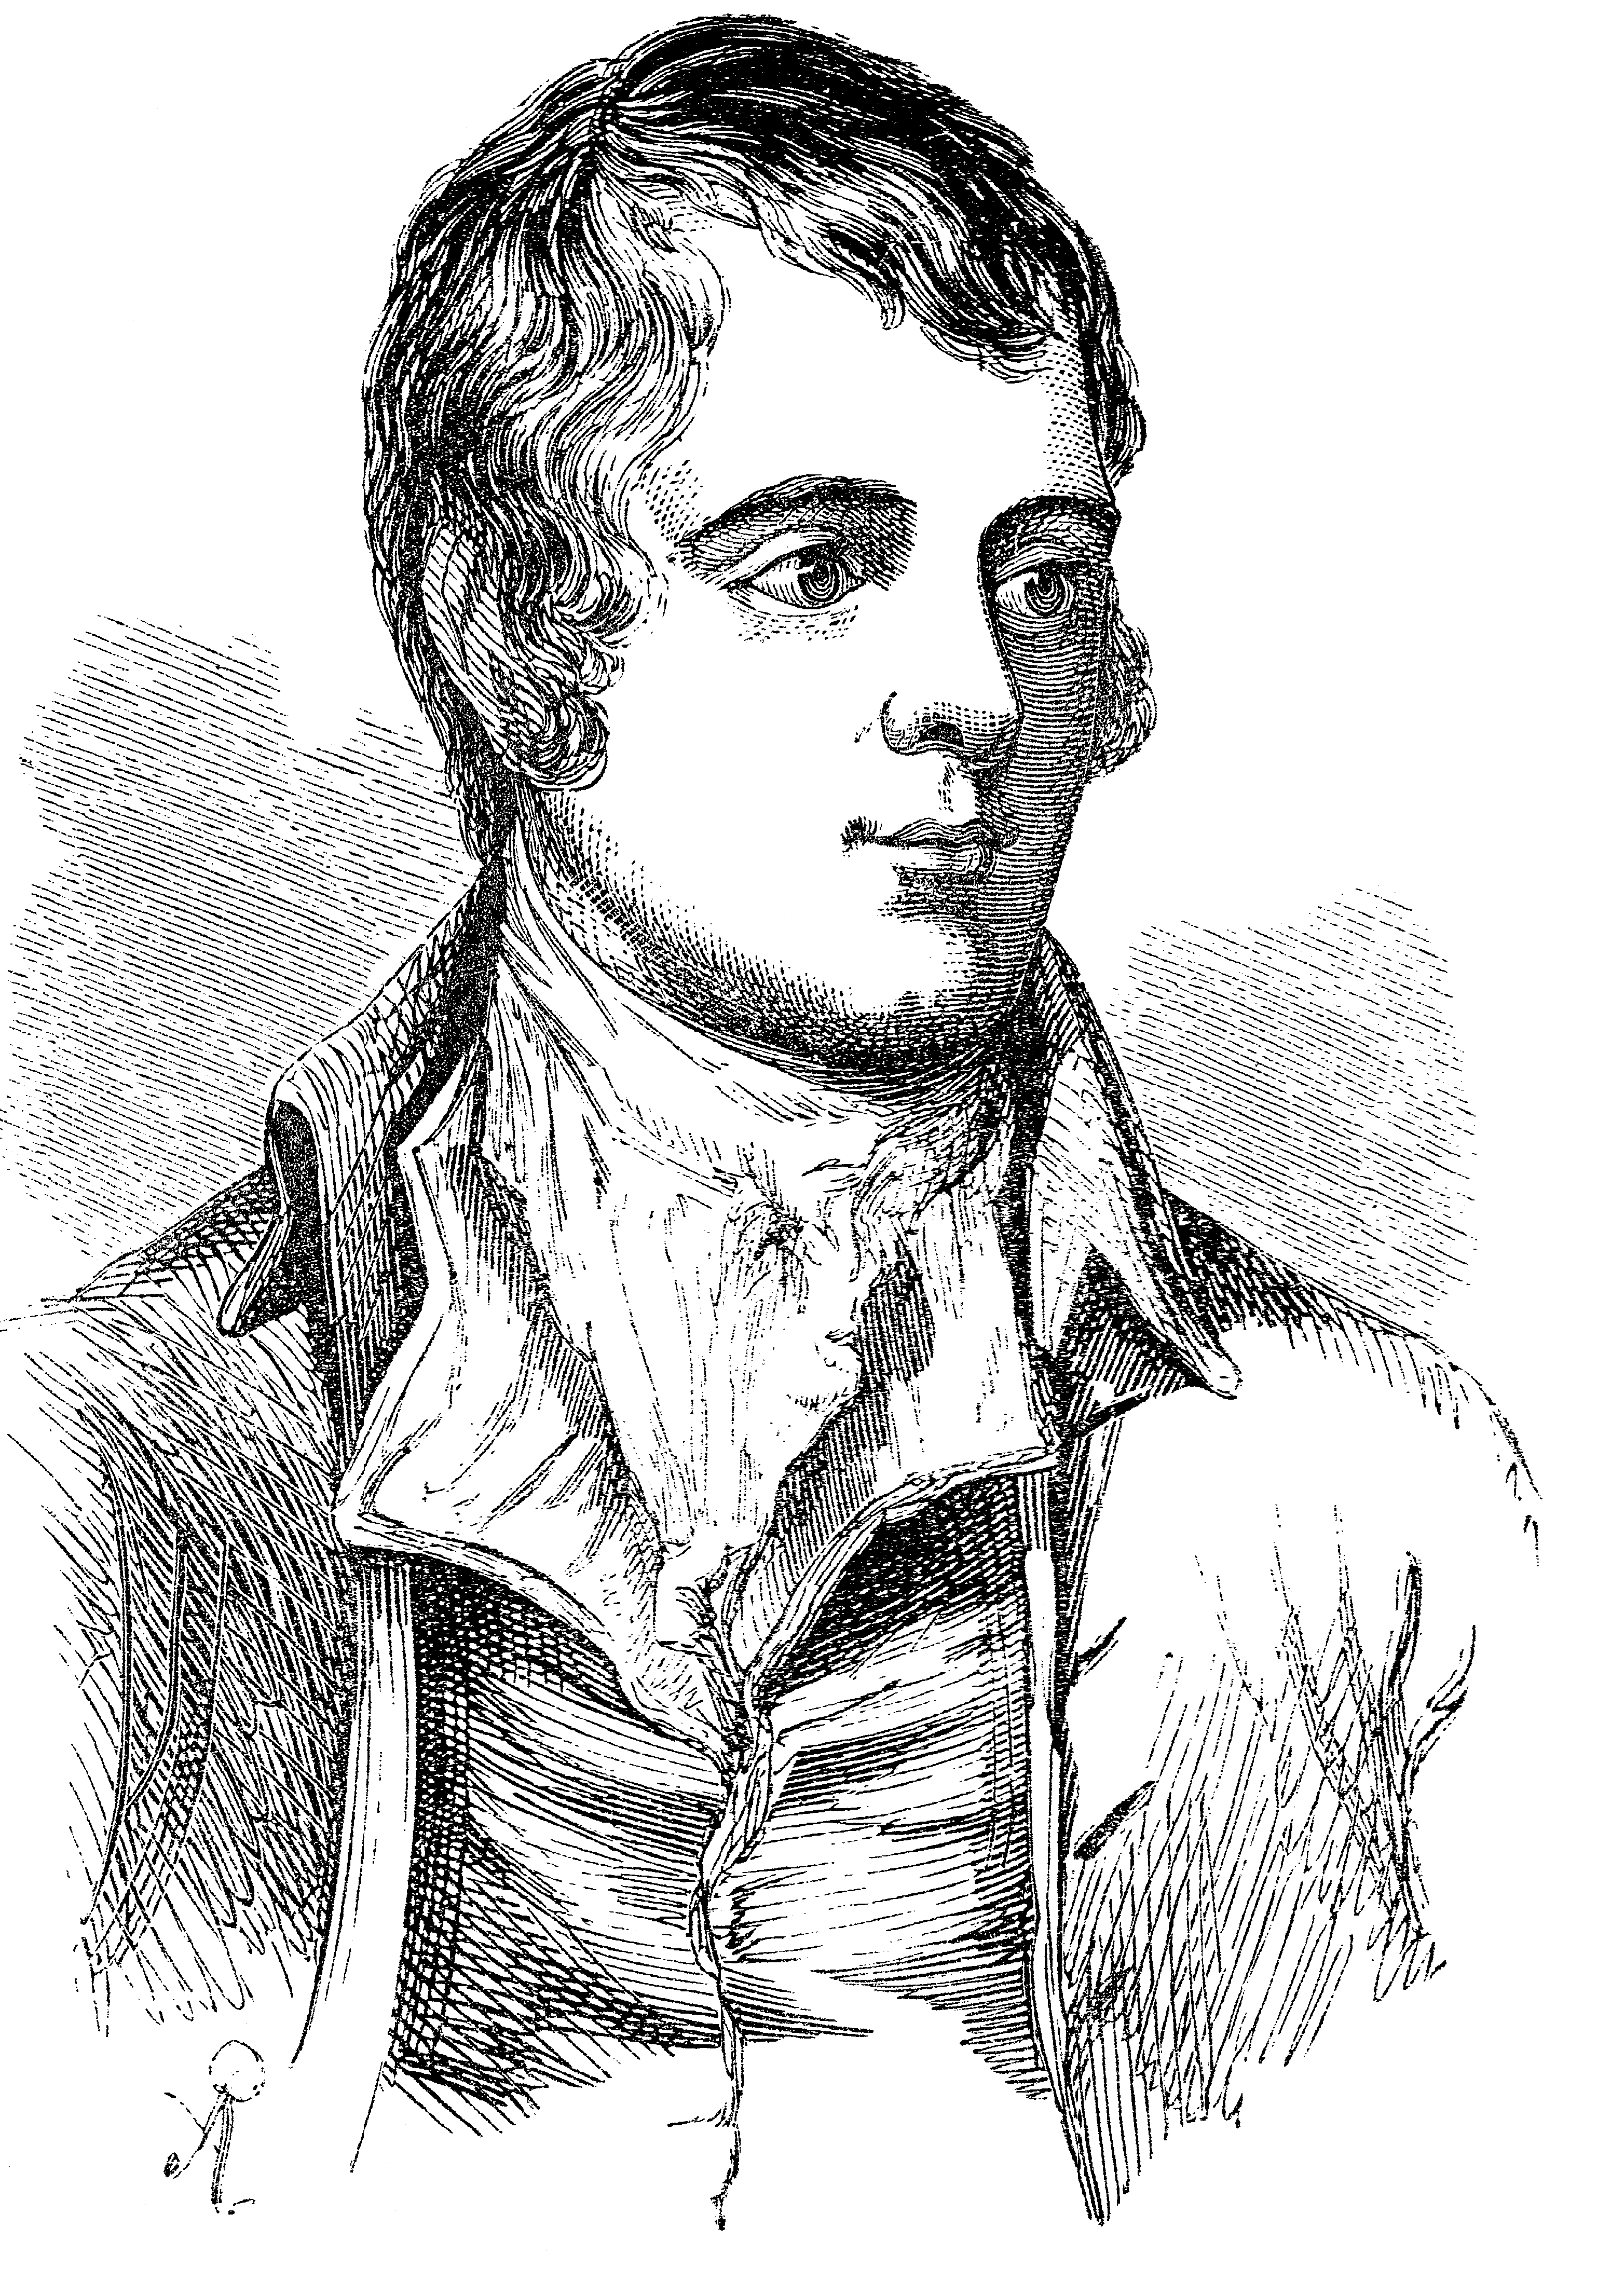 File:Rabbie.png - Wikimedia Commons